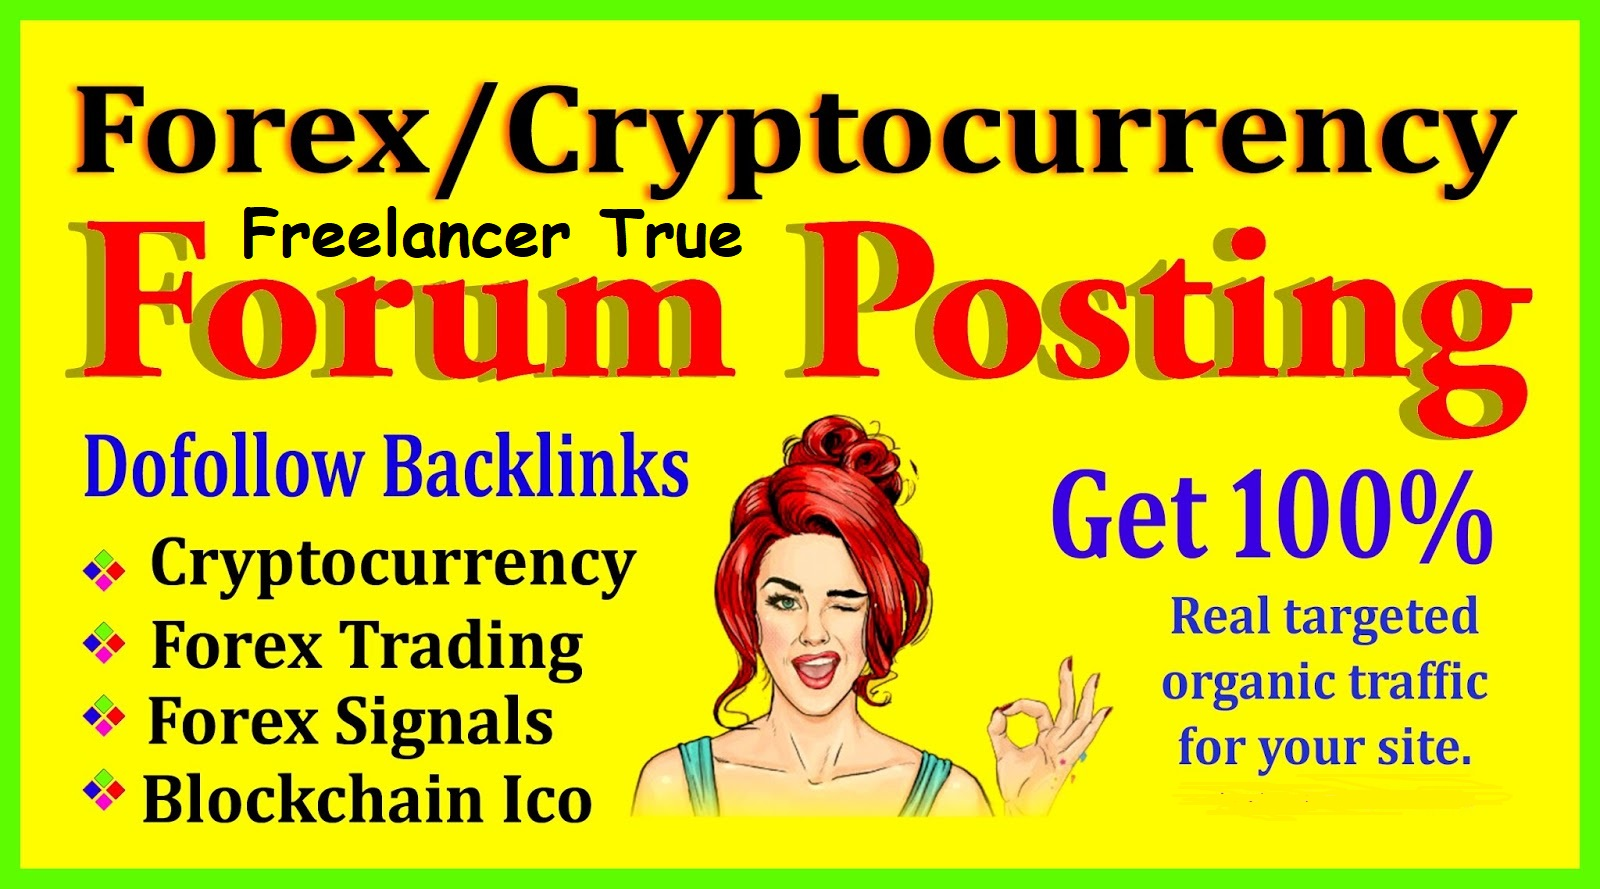 20 forex and cryptocurrency promotion by forum posting